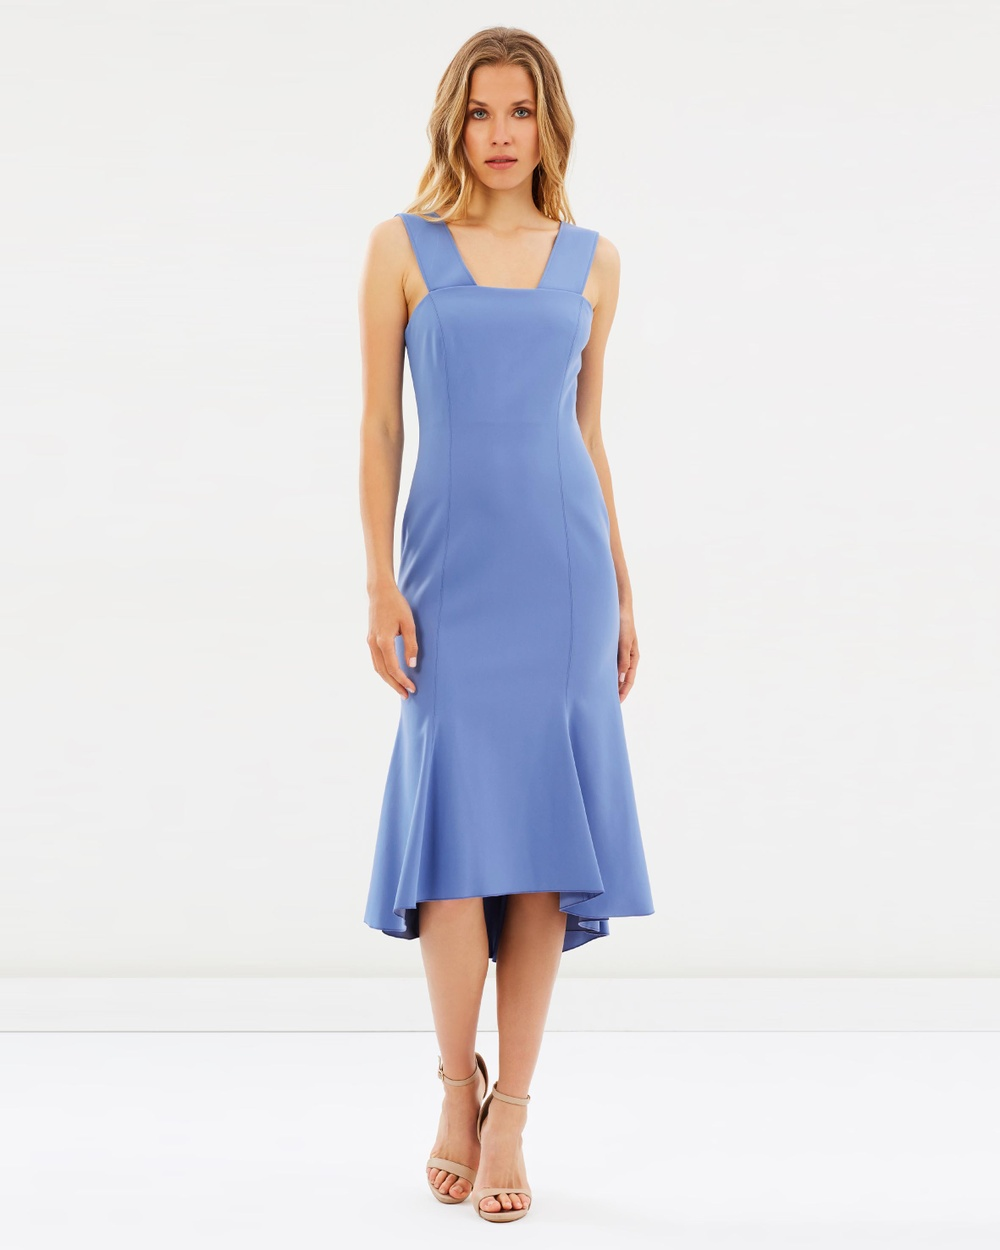 Ginger & Smart Carmen Dress Dresses Bluebell Carmen Dress